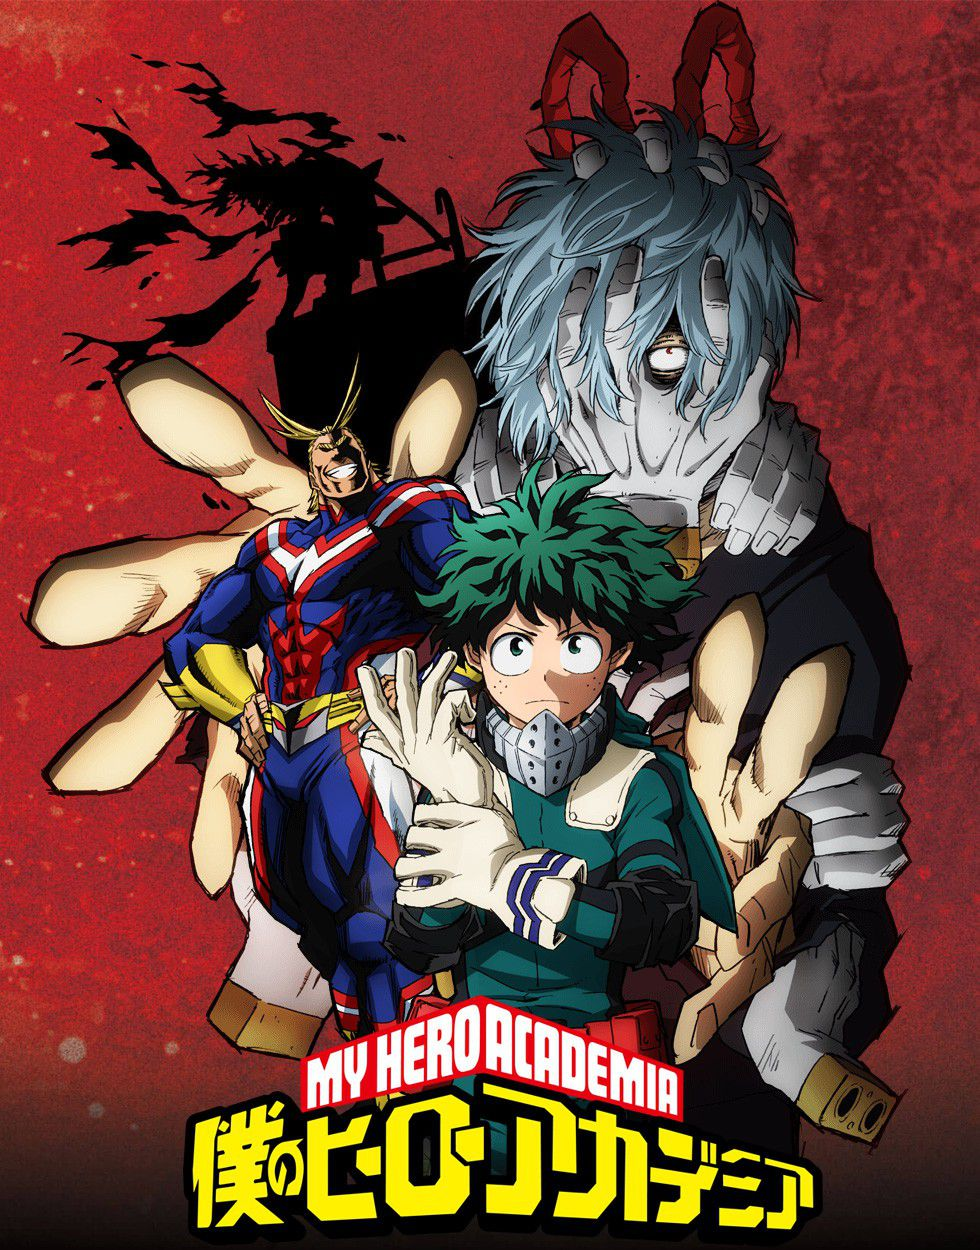 My Hero Academia - Boku no Hiro Akademia - All Might - One for All - All for One